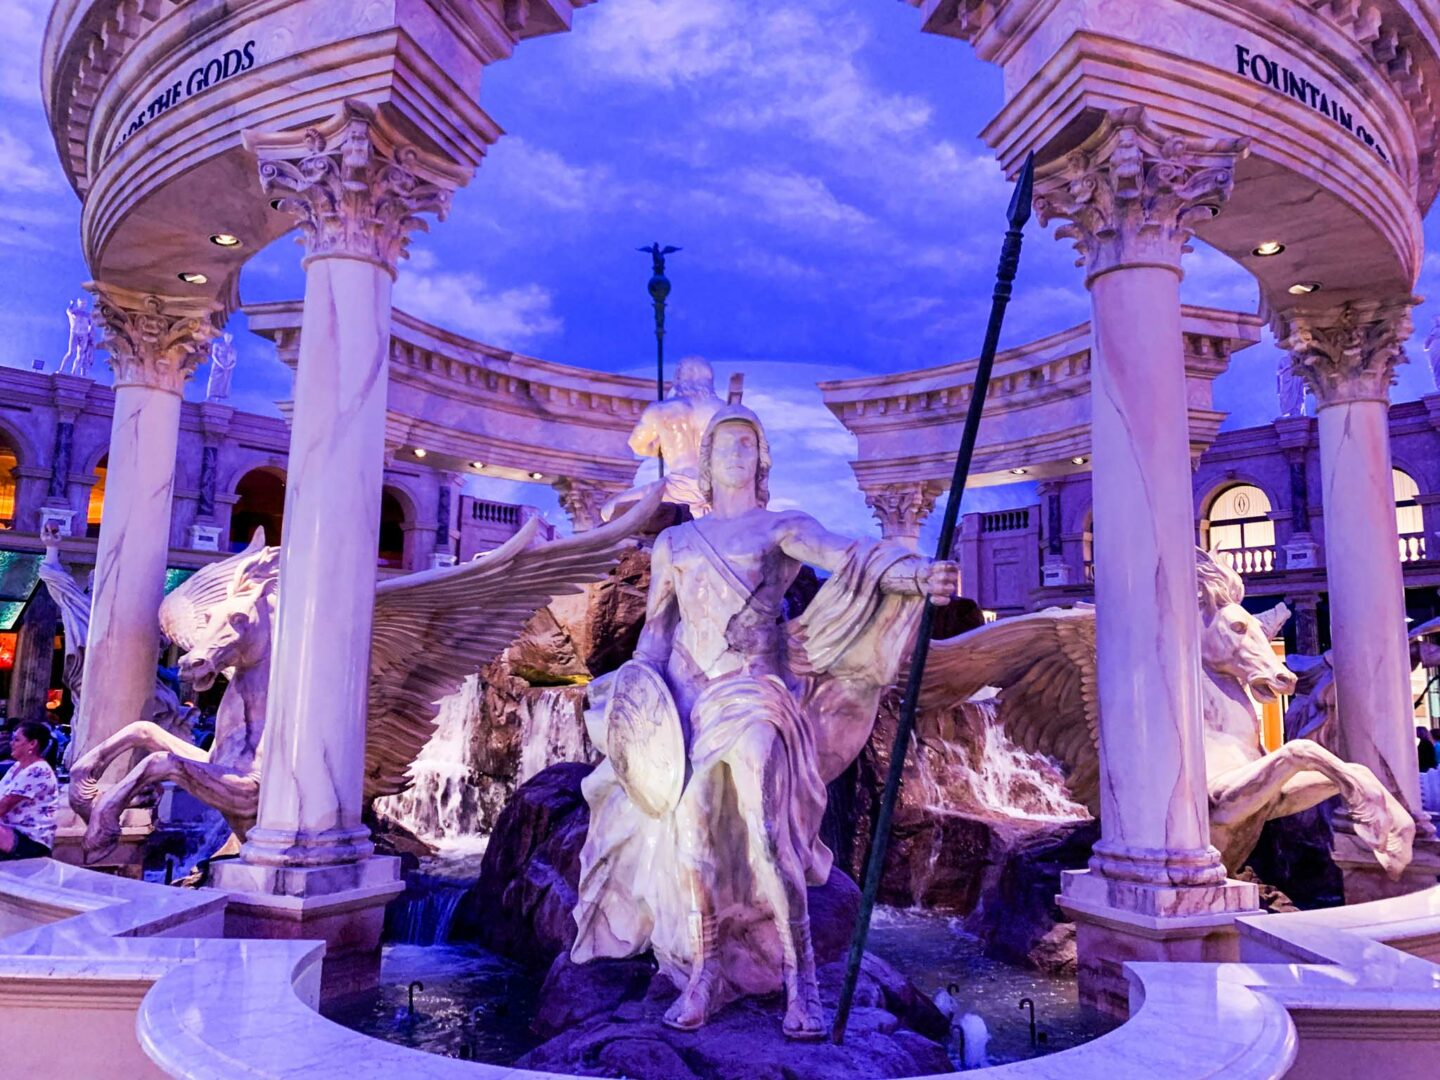 Inside the Forum Shops, the mall is designed to look like a roman ruin.